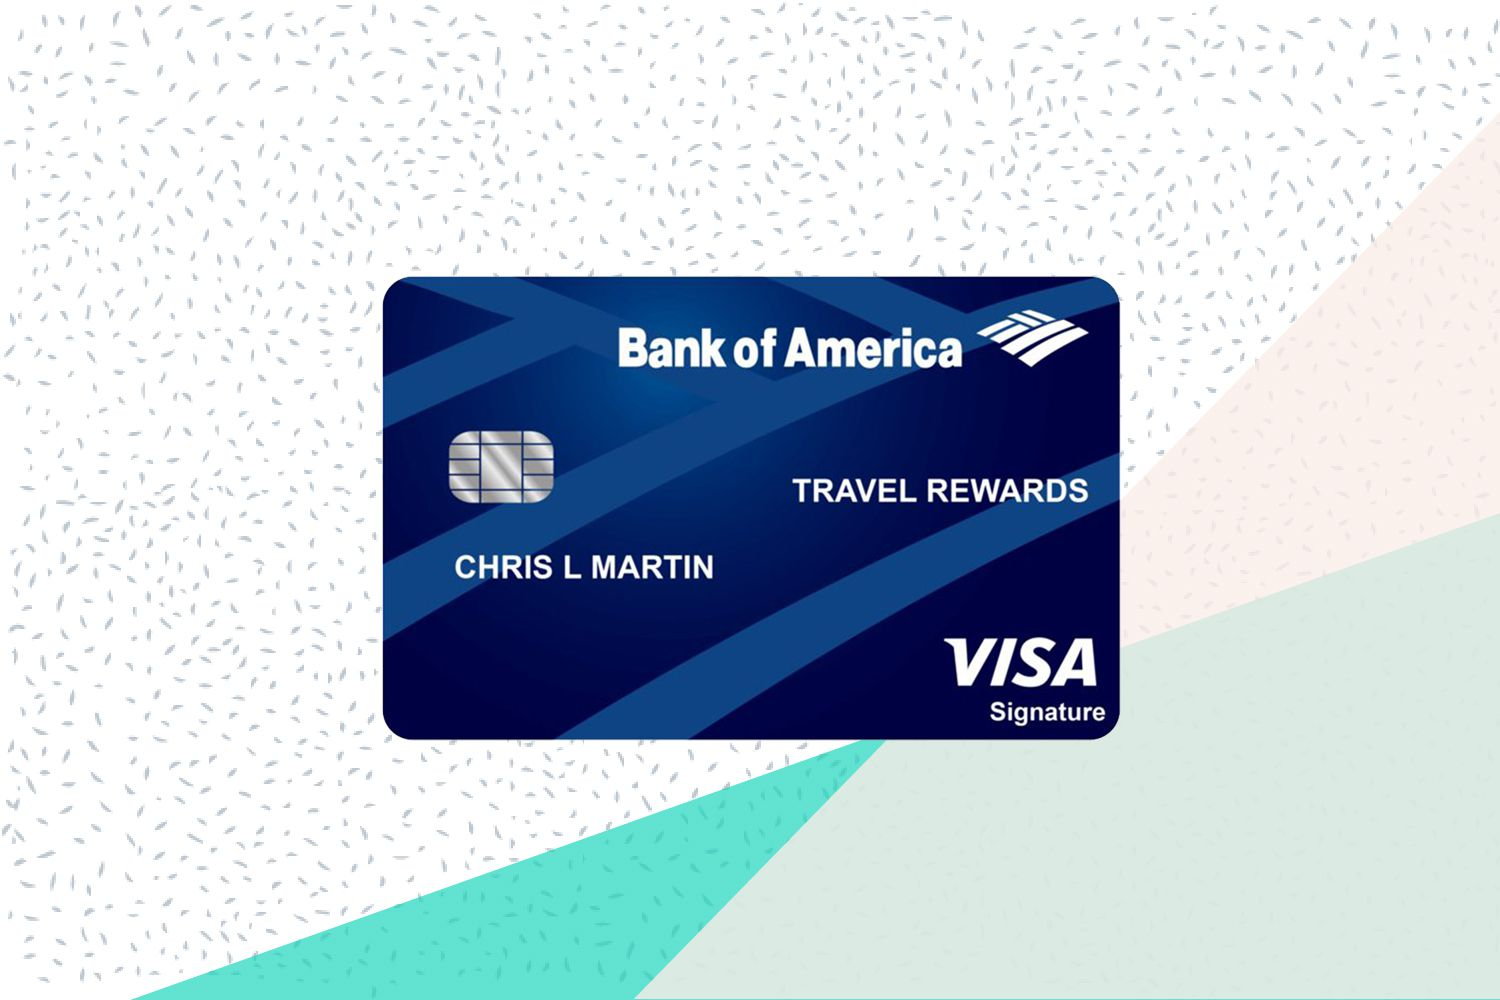 How to Get a Bank of America Travel Rewards Credit Card - No Annual Fee